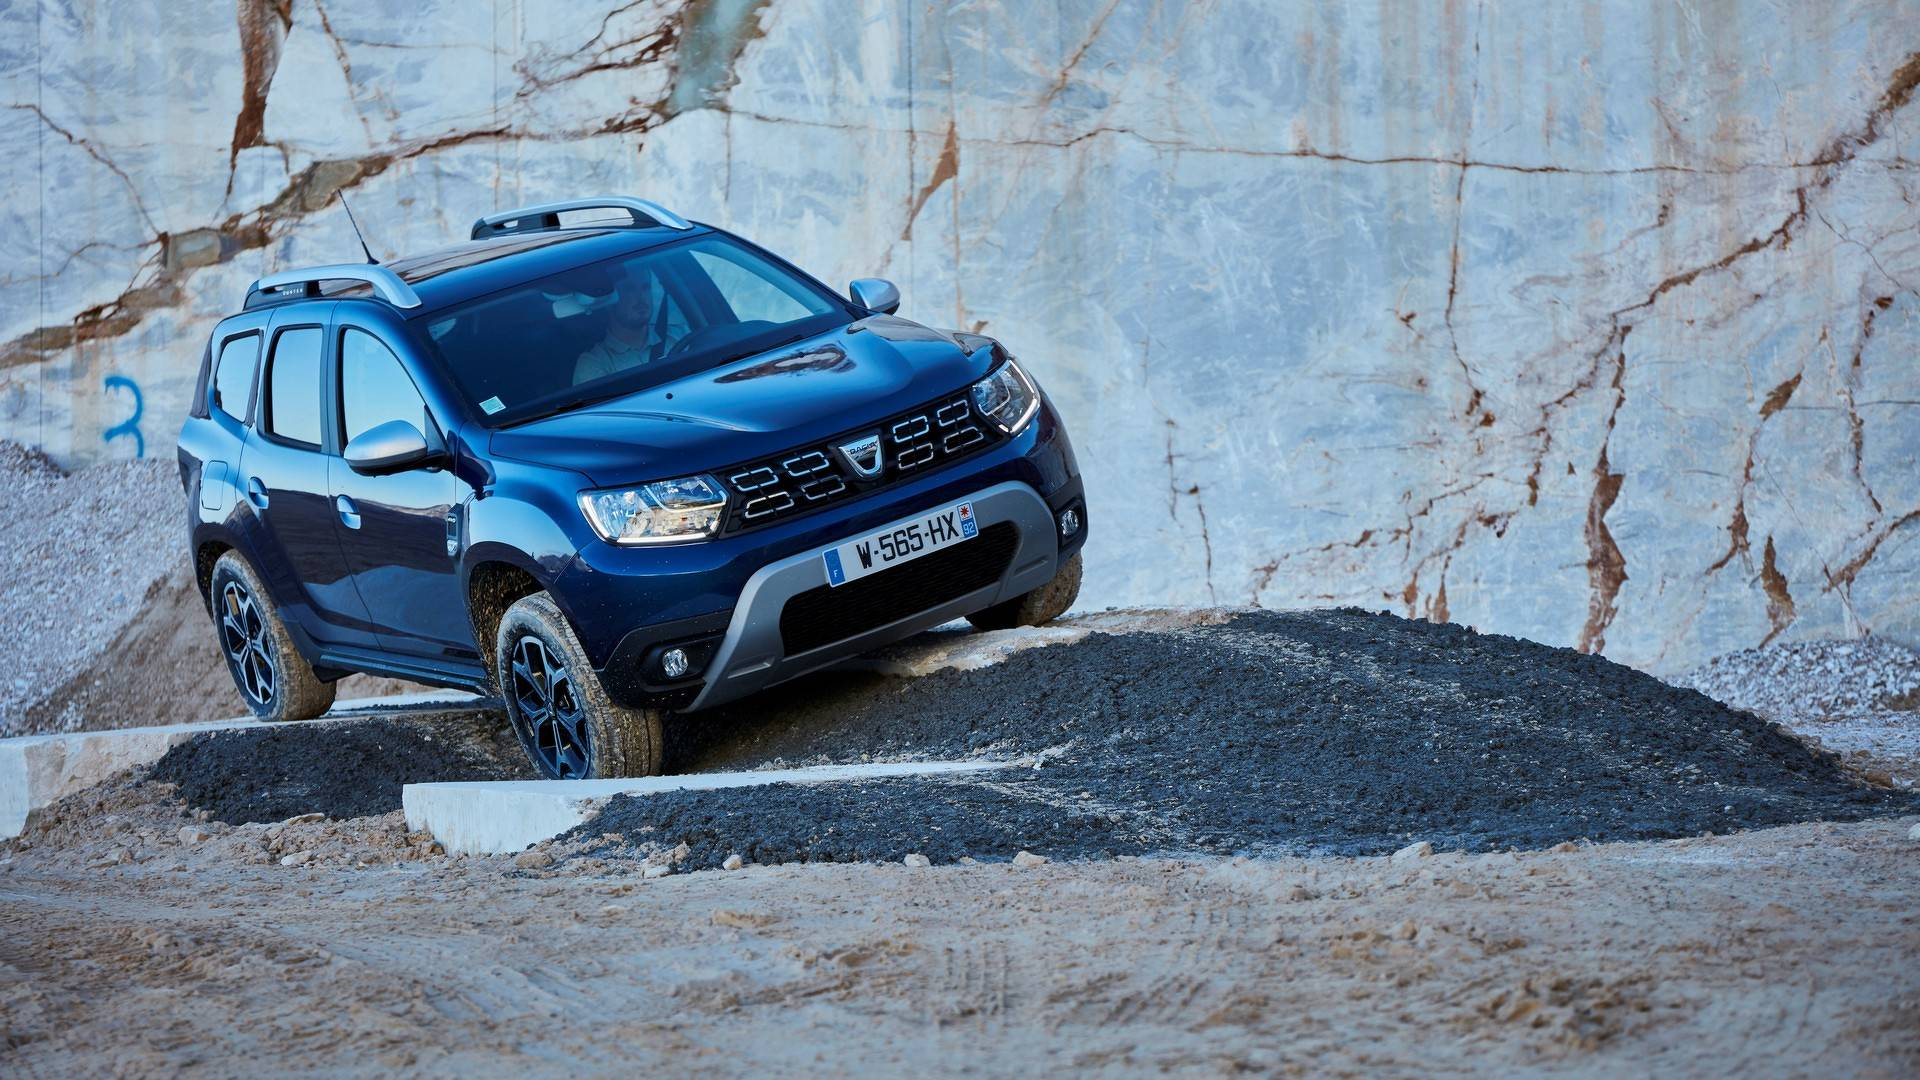 2018 Dacia Duster Detailed In Nearly 300 Images New Videos